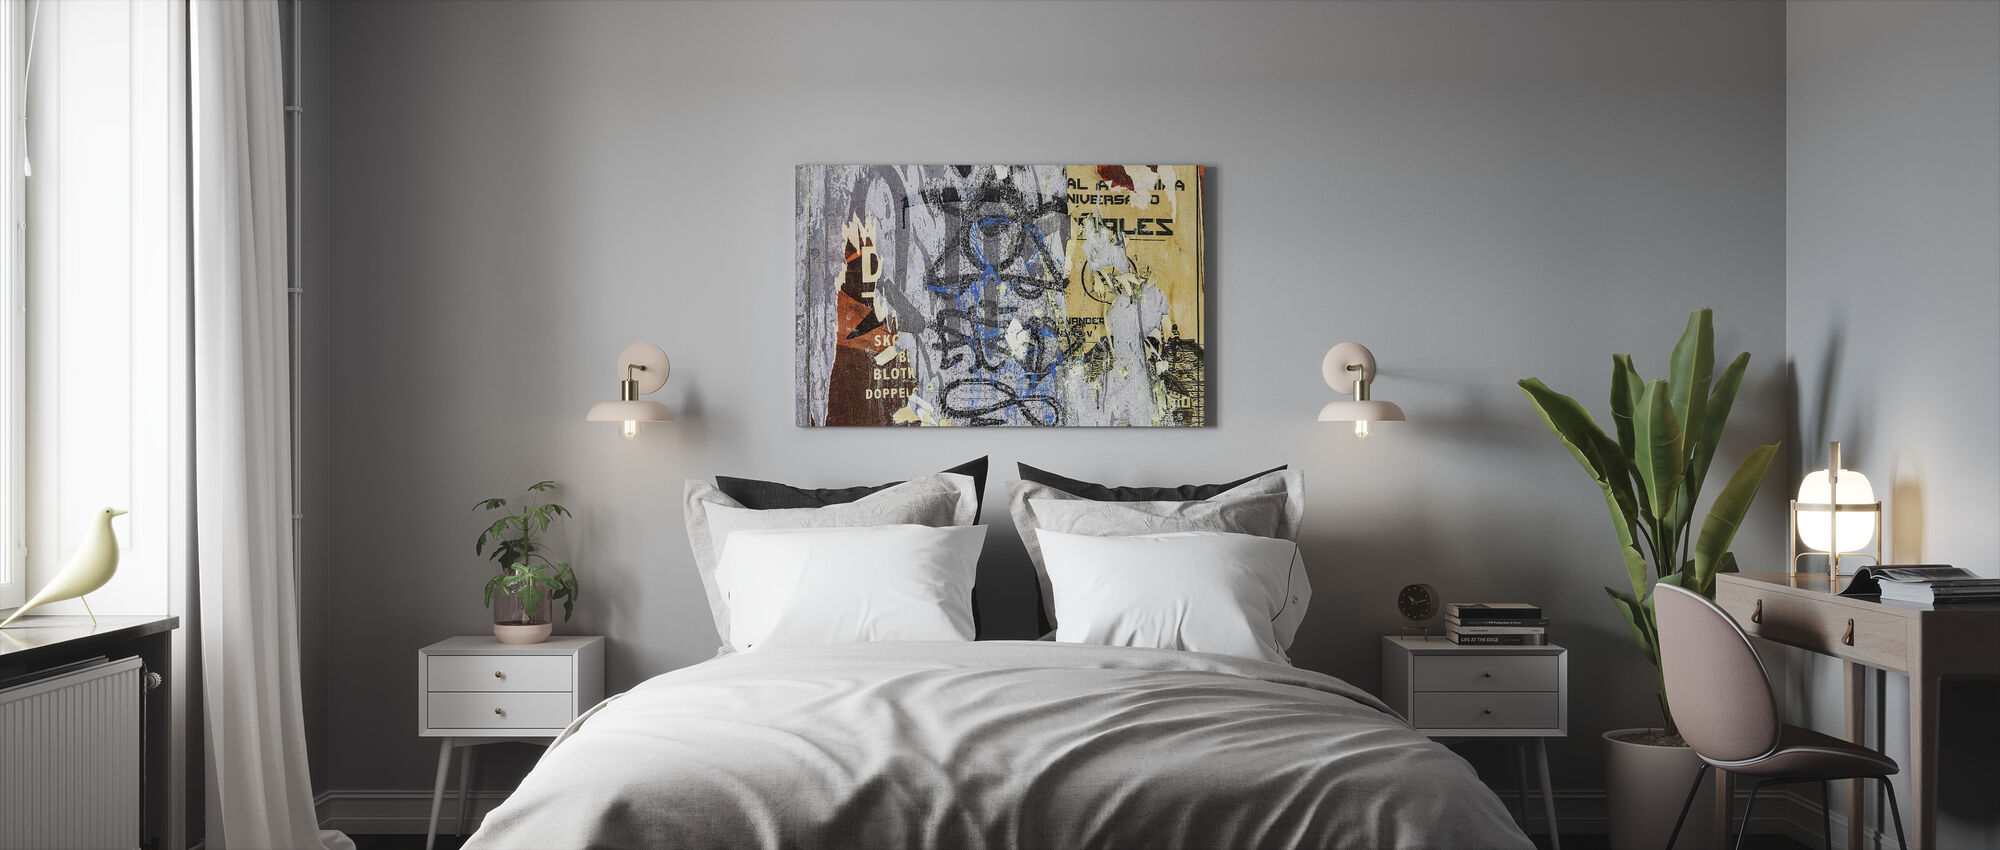 Torn Posters and Graffiti - Canvas print - Bedroom